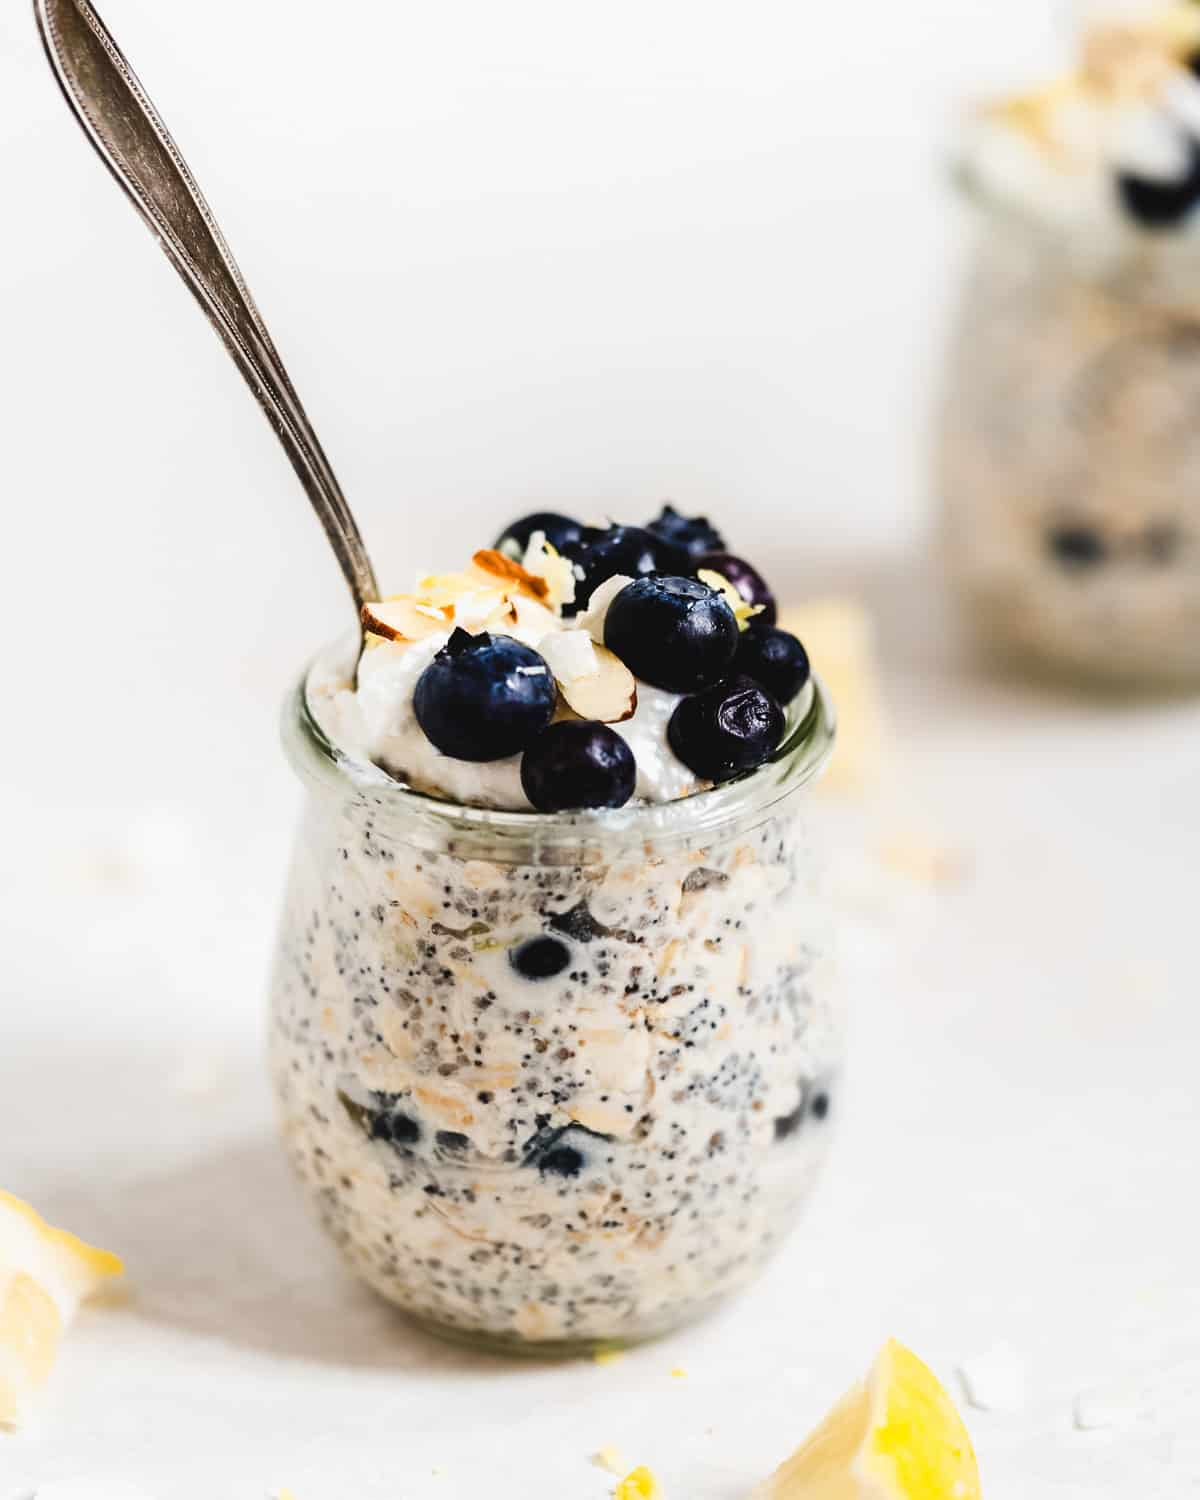 Jar full of oats with blueberries on top and a spoon inside.